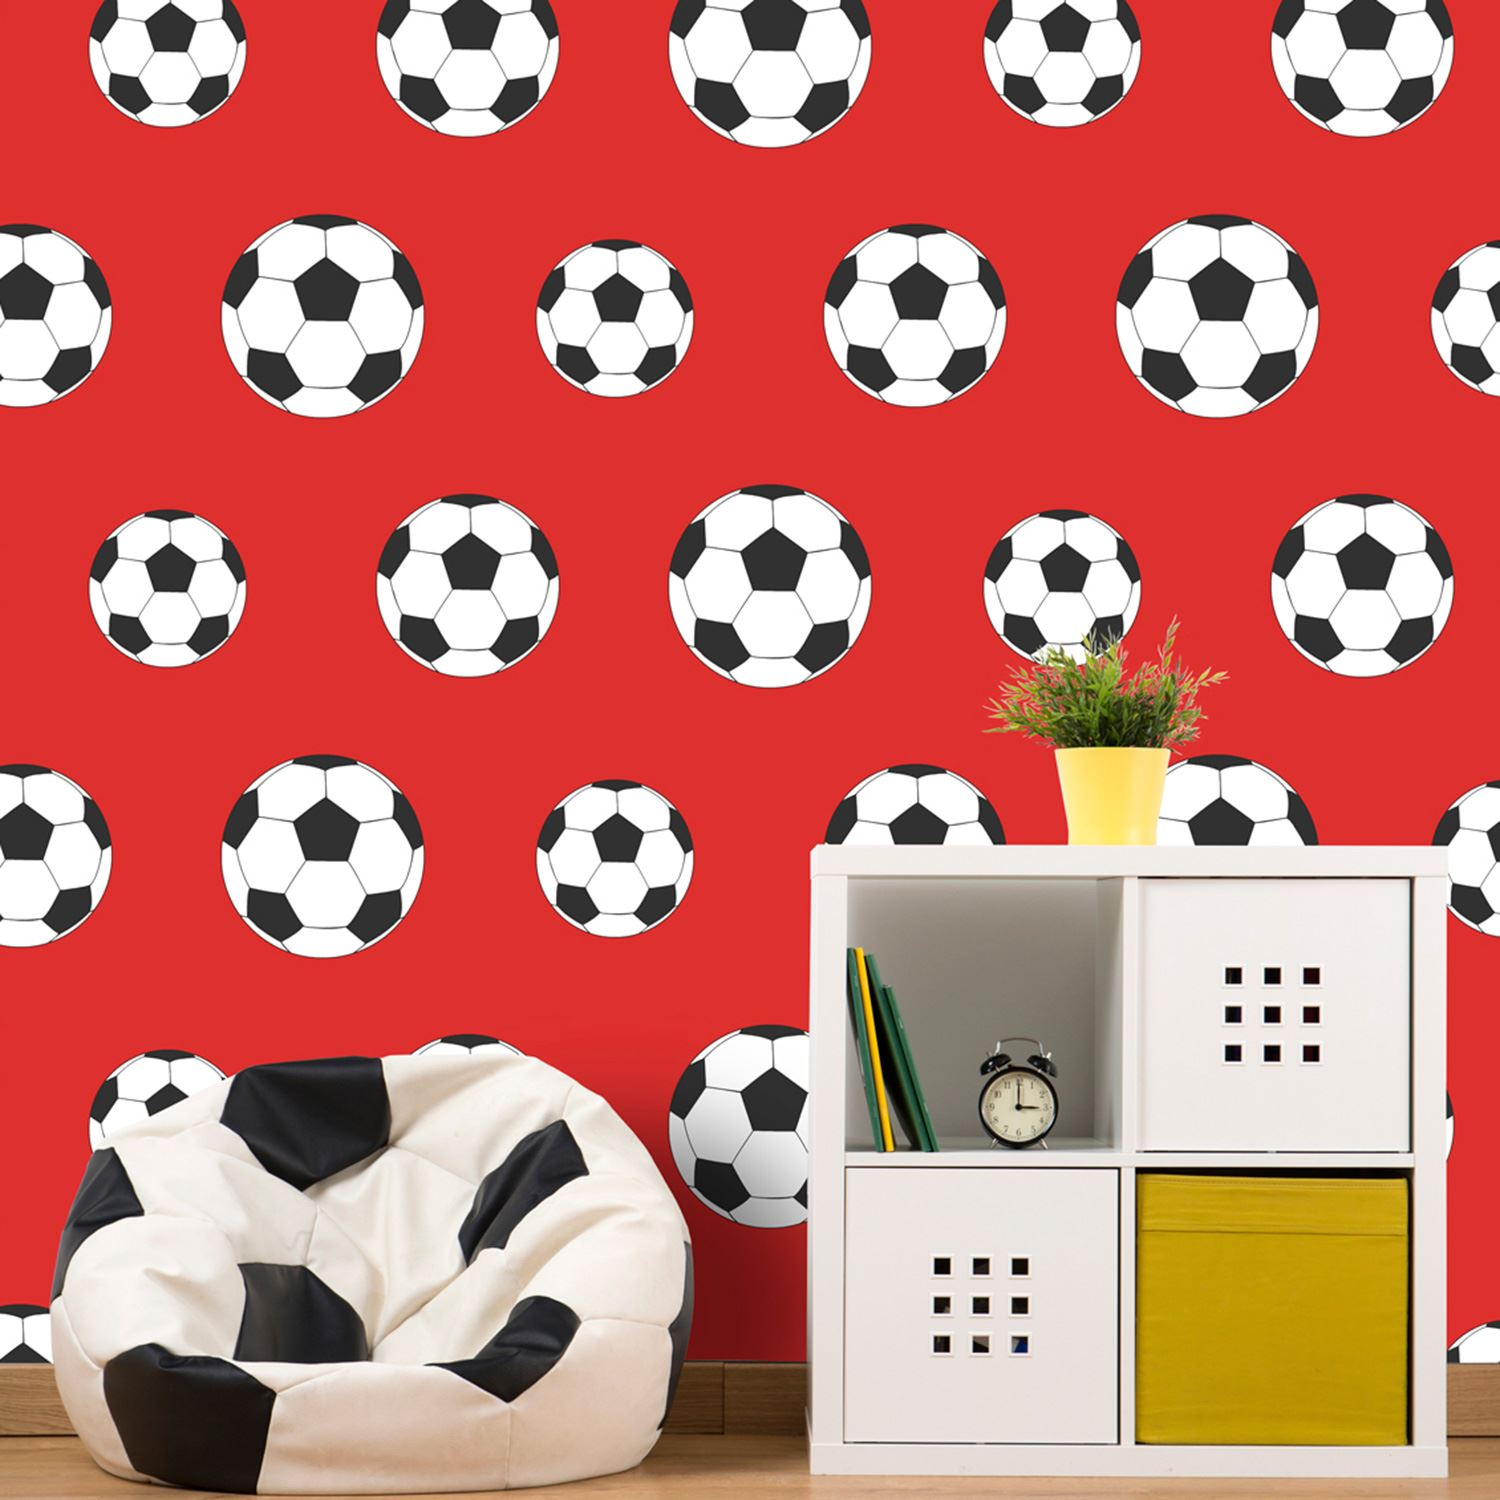 Goal Football Wallpaper Red 9720 Belgravia Decor Kids Boys Room